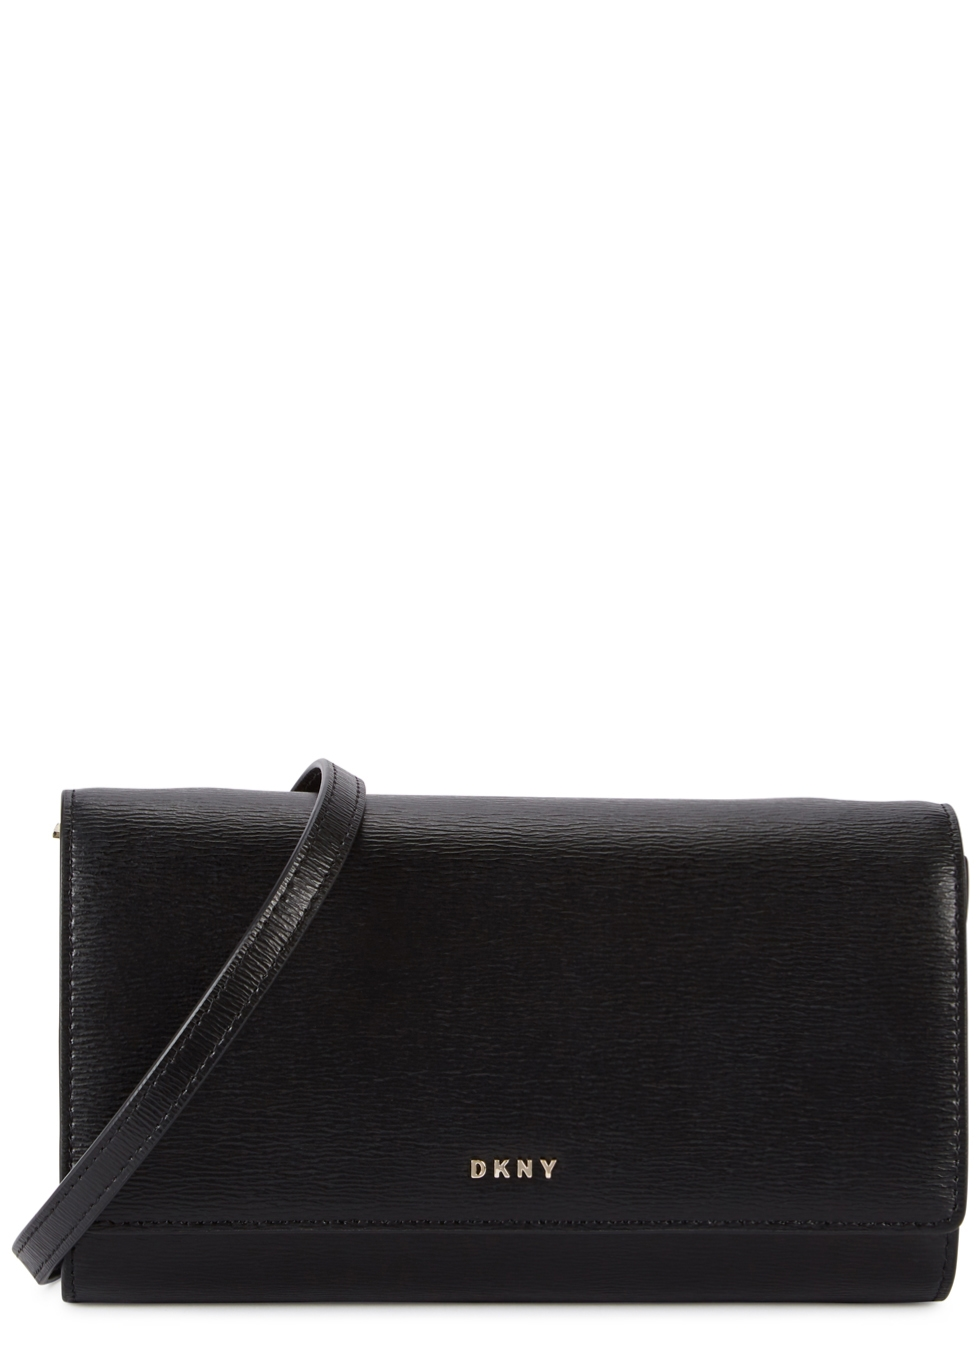 DKNY BRYANT BLACK LEATHER CLUTCH